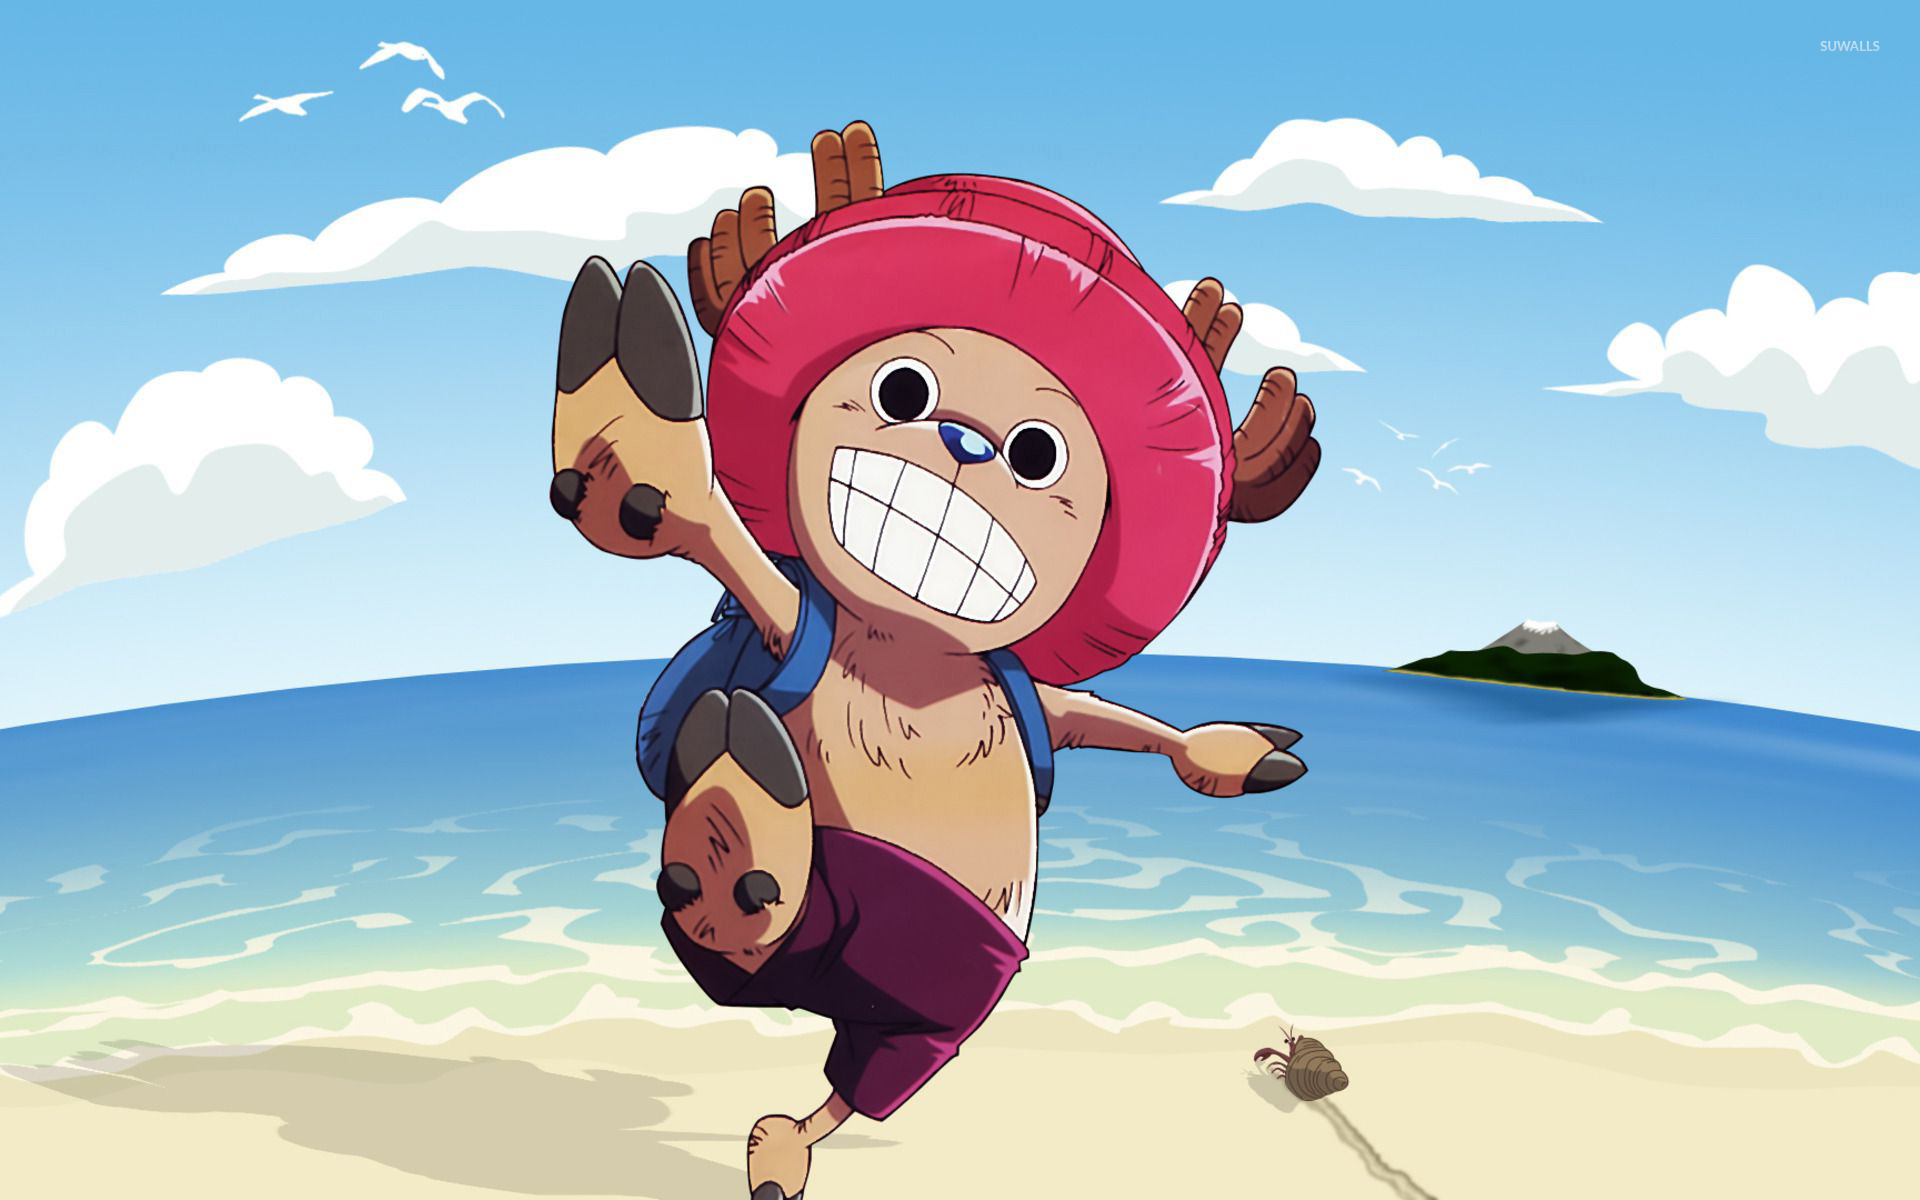 Tony Tony Chopper One Piece Chopper Background 124876 Hd Wallpaper Backgrounds Download